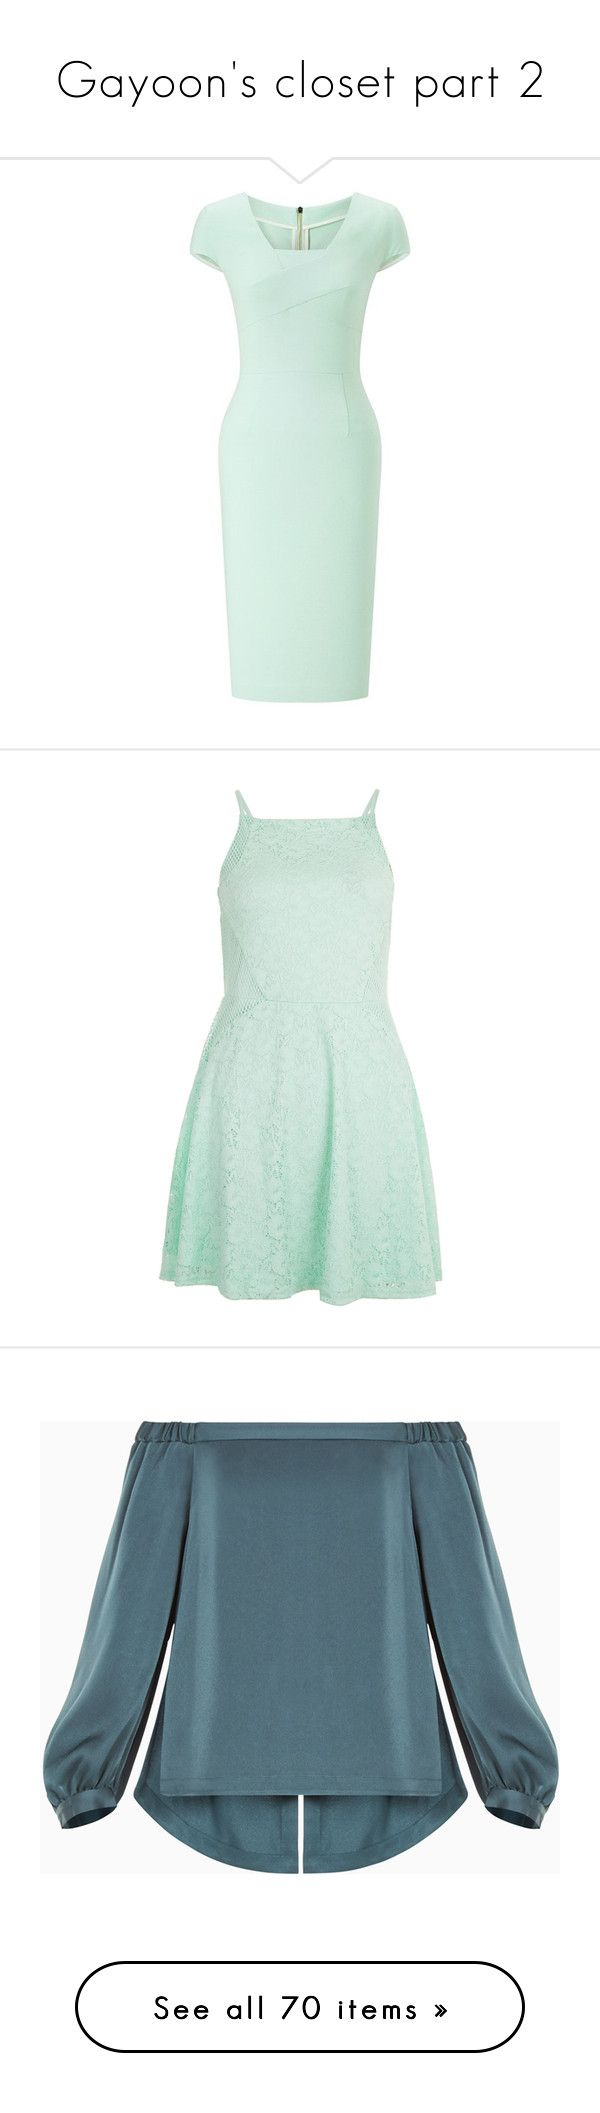 """""""Gayoon's closet part 2"""" by truekpopper4life ❤ liked on Polyvore featuring dresses, midi, green wrap dress, pastel dress, midi wrap dress, cap sleeve midi dress, cap sleeve dress, mint green, night out dresses and mint green party dress"""